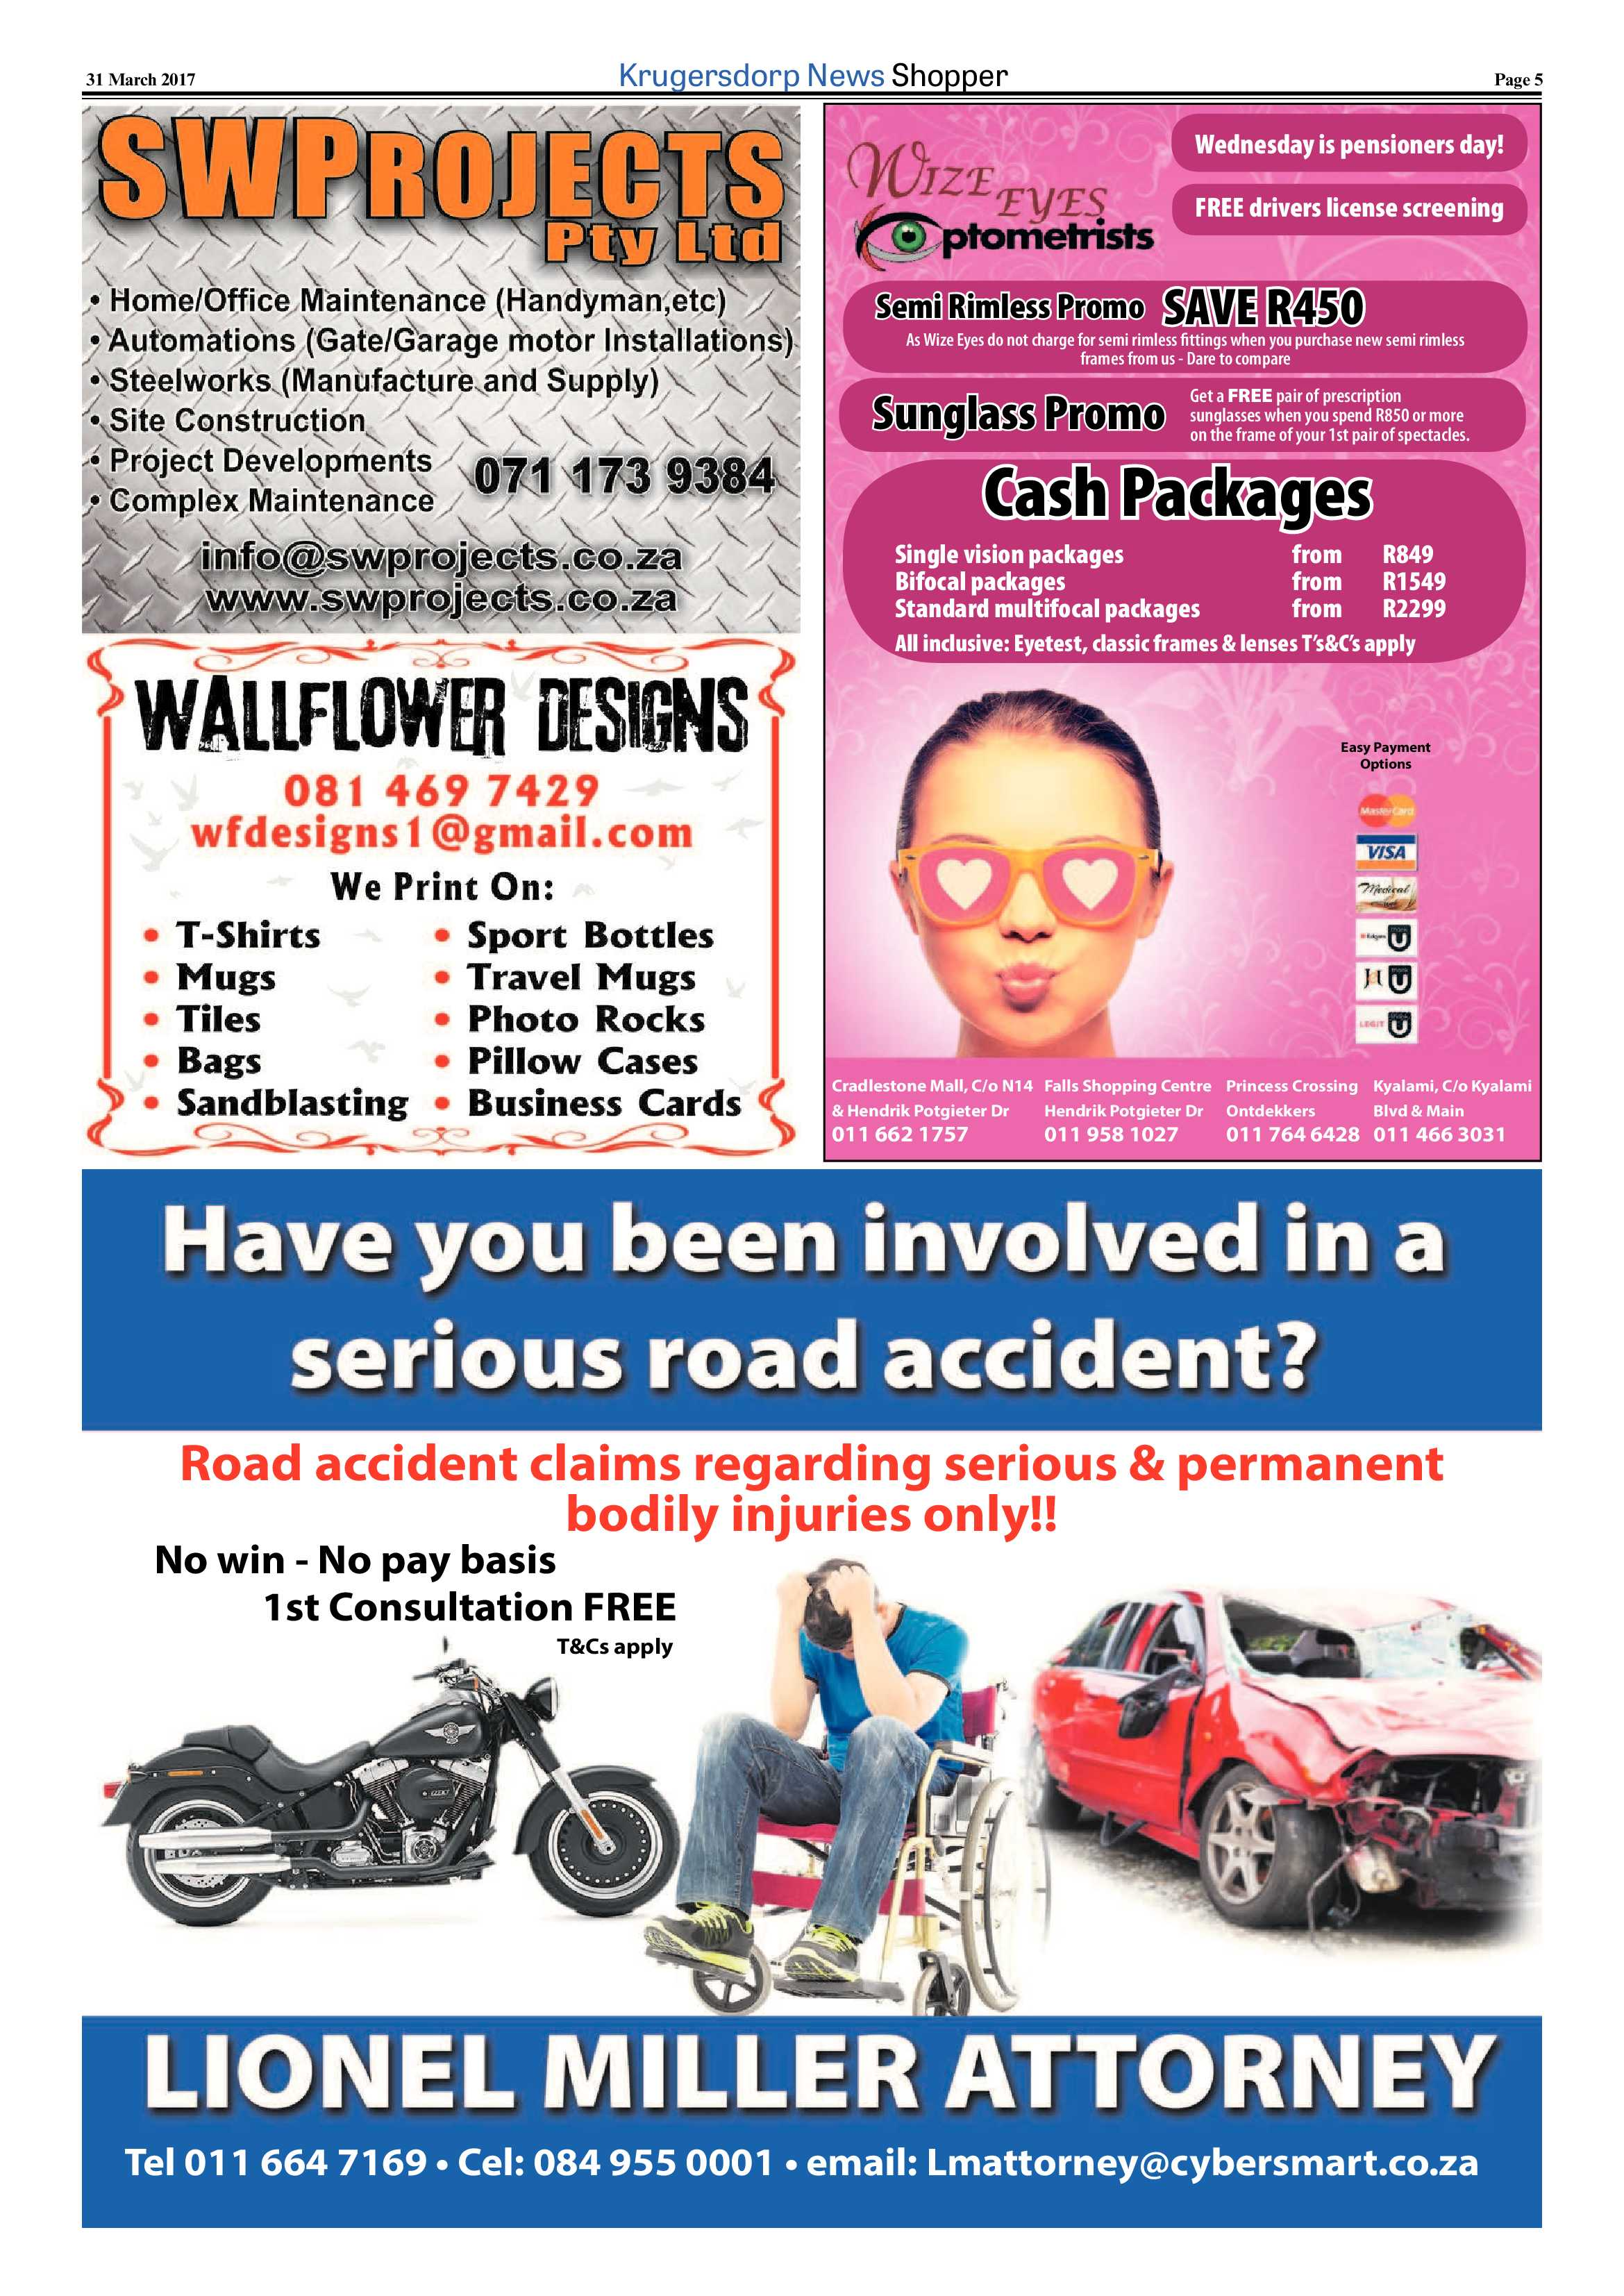 krugersdorp-news-shopper-march-2017-epapers-page-5